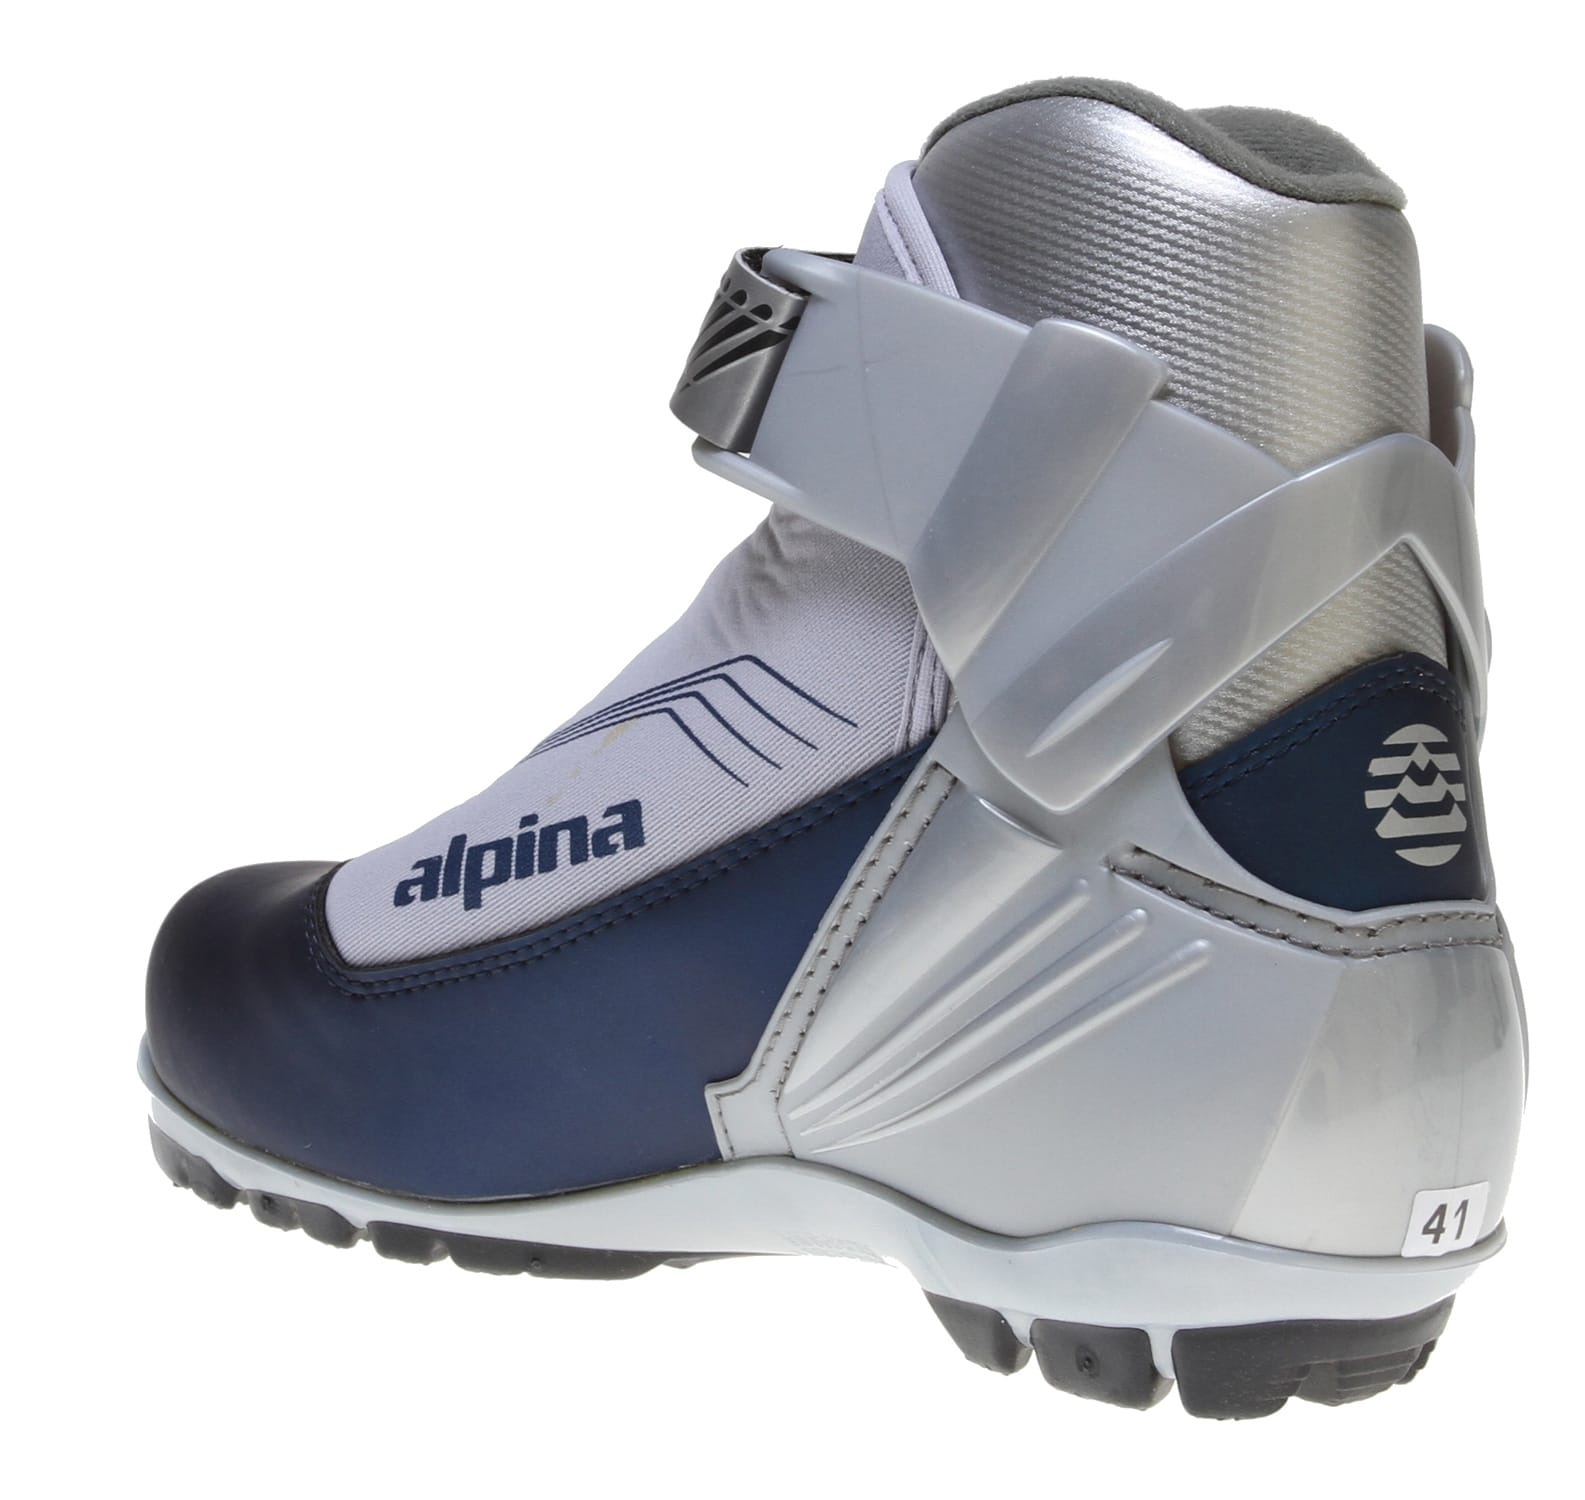 Alpina TR L Cross Country Boots Womens - Alpina cross country boots